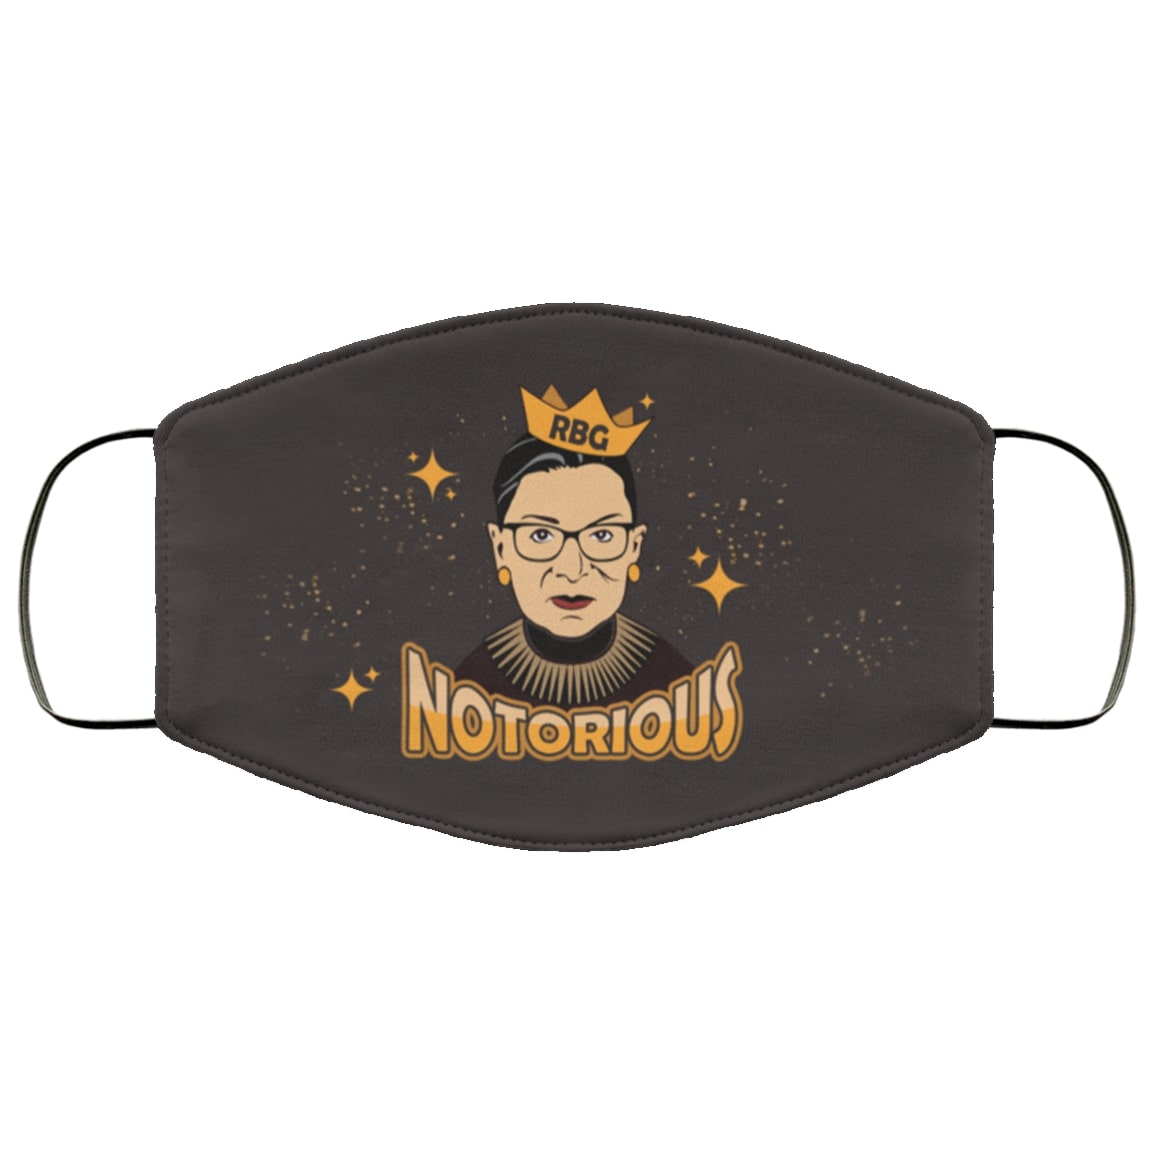 Notorious ruth bader ginsburg feminism anti pollution face mask 4